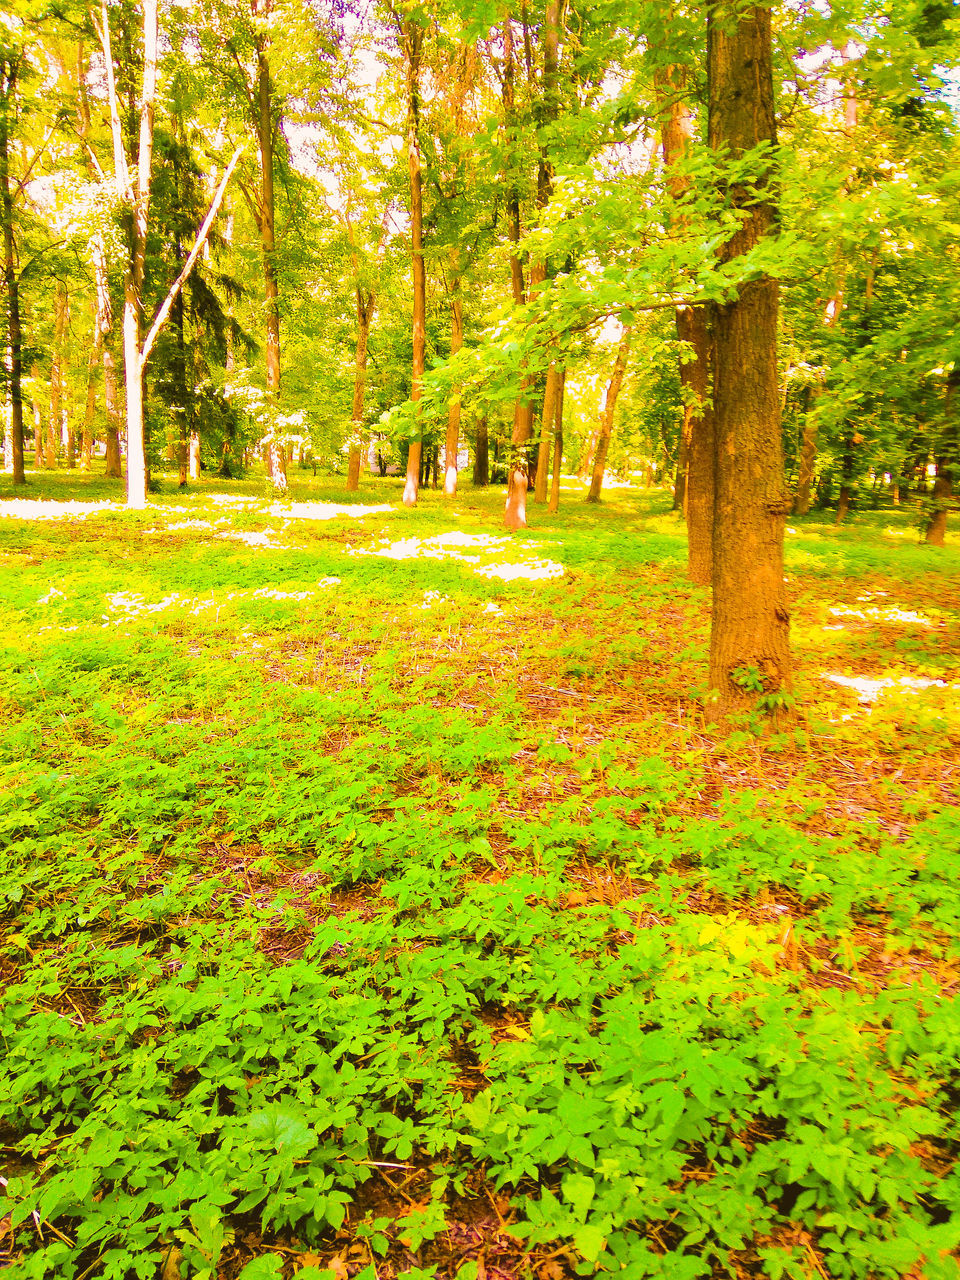 tree, nature, tranquility, growth, forest, beauty in nature, green color, tranquil scene, scenics, leaf, outdoors, tree trunk, day, autumn, no people, change, branch, landscape, grass